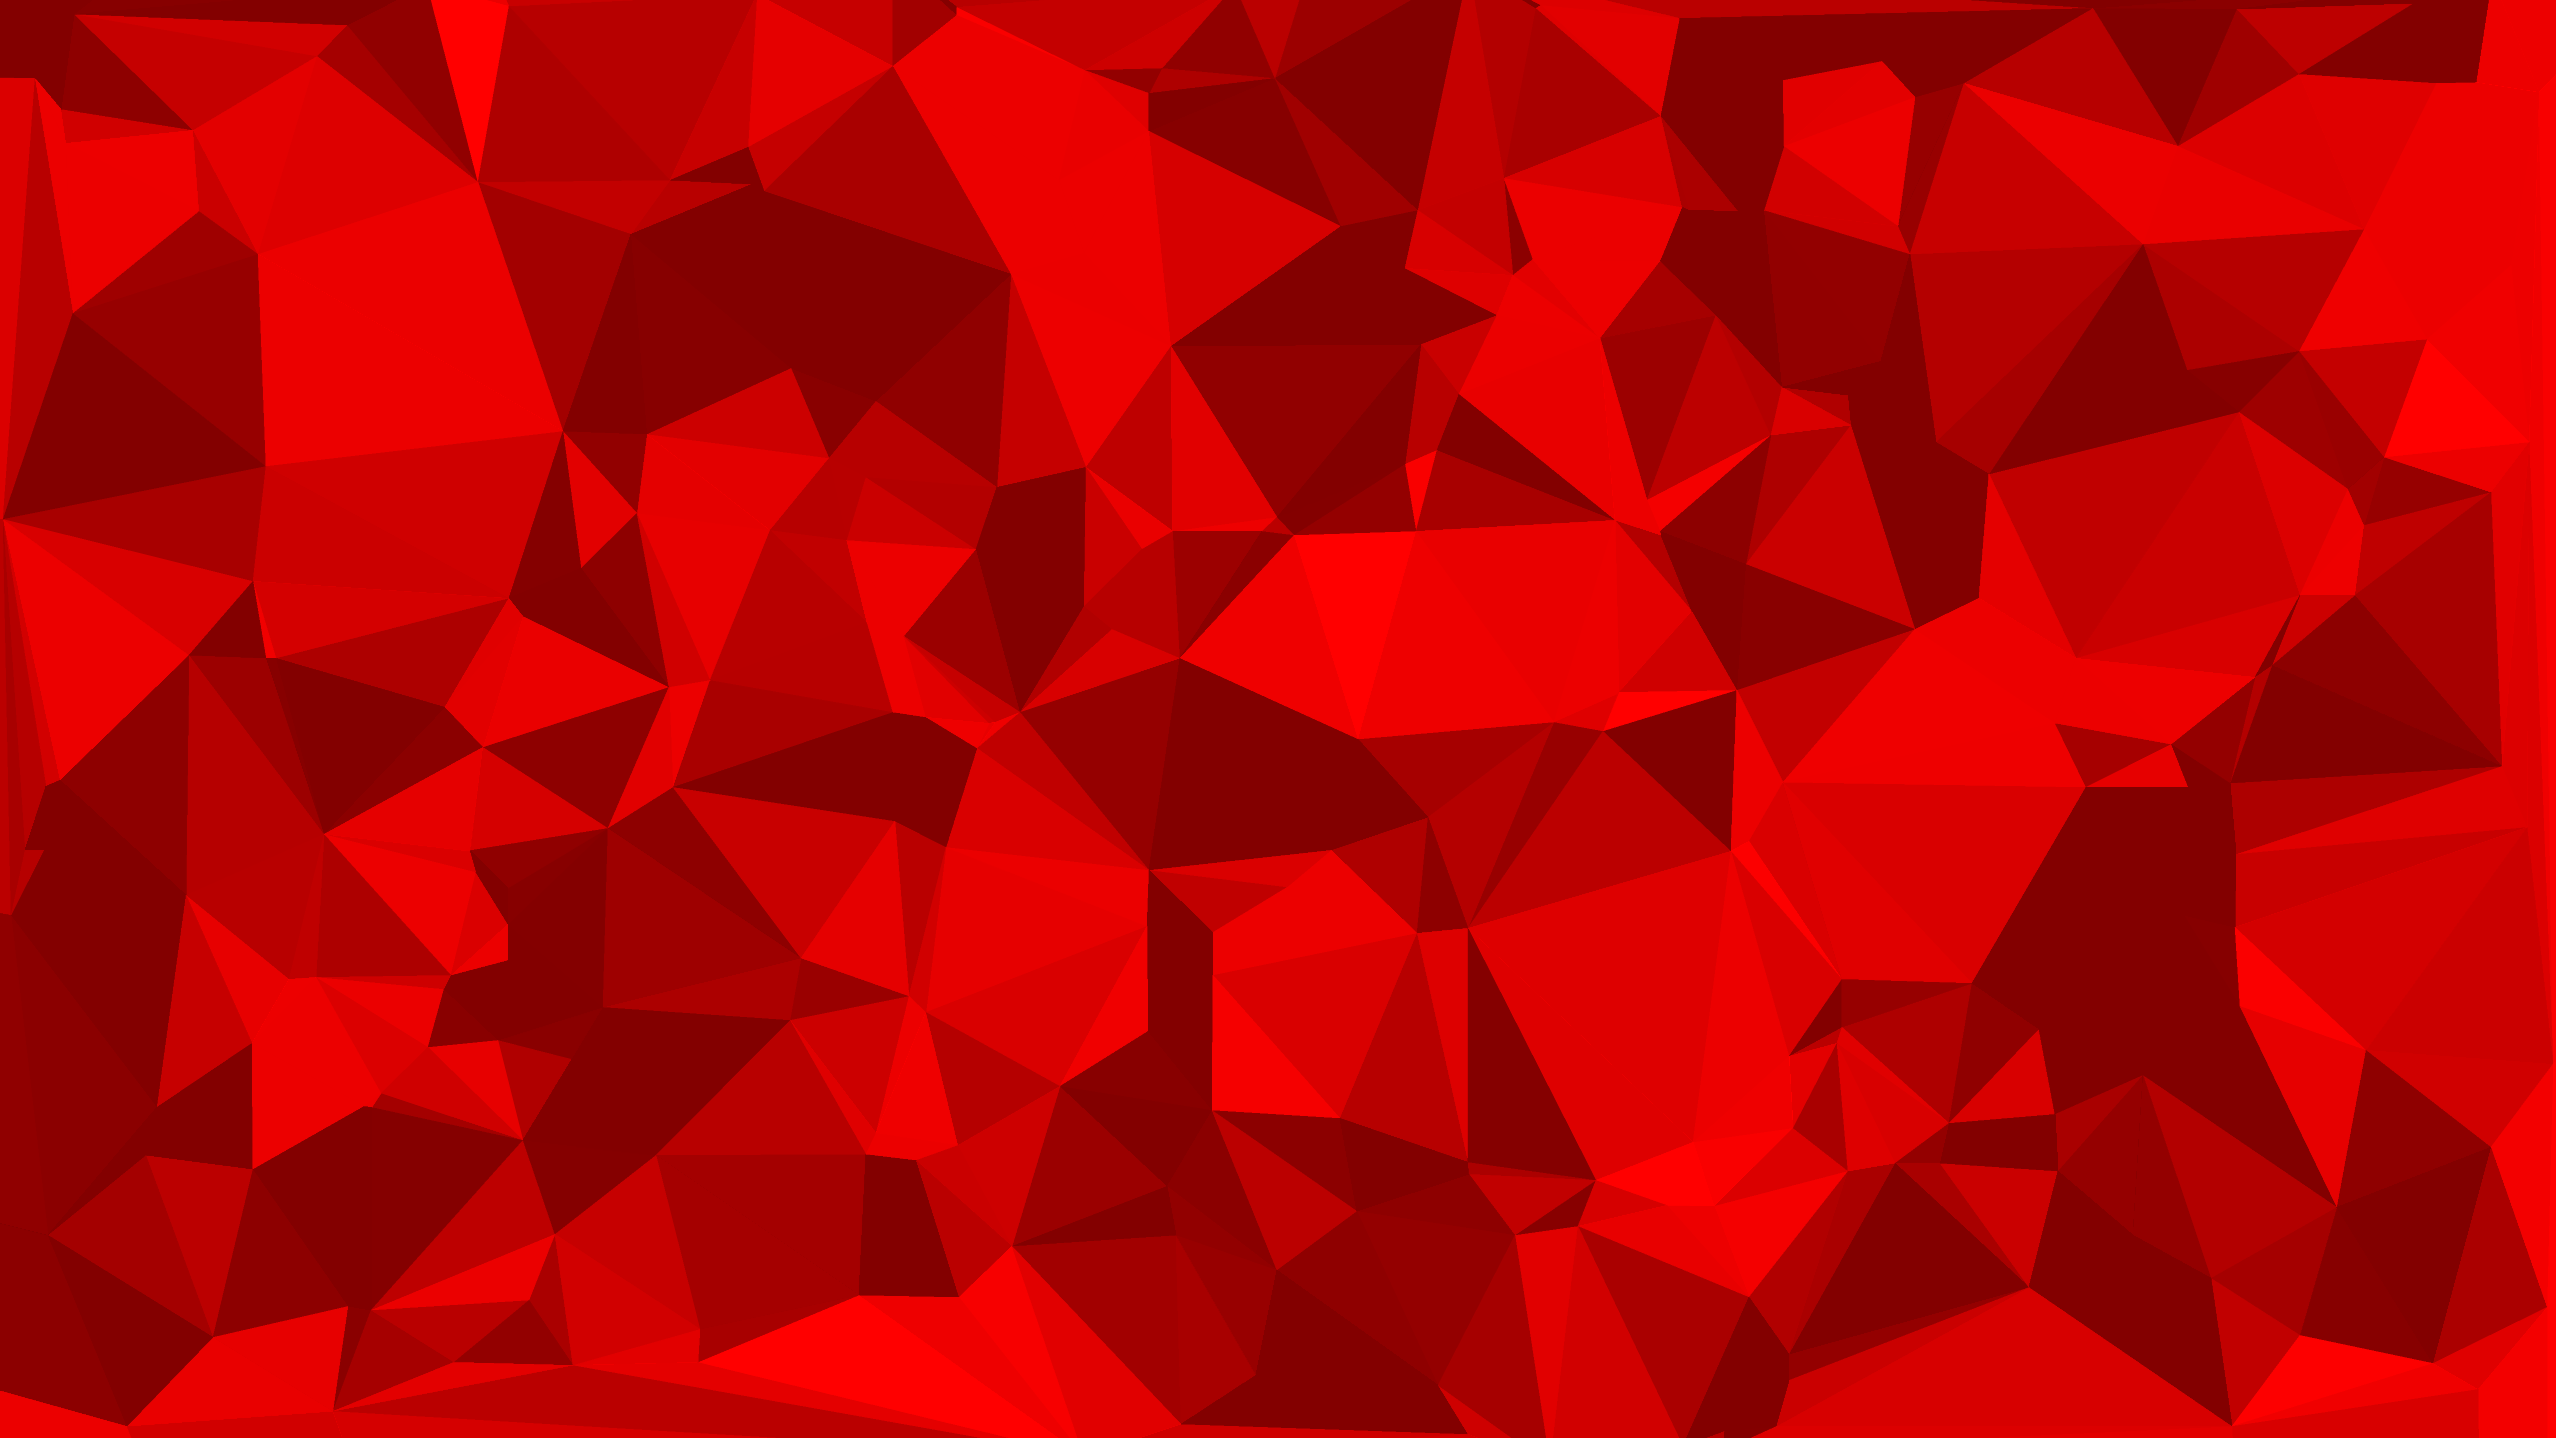 uhd red wallpapers top free uhd red backgrounds wallpaperaccess uhd red wallpapers top free uhd red